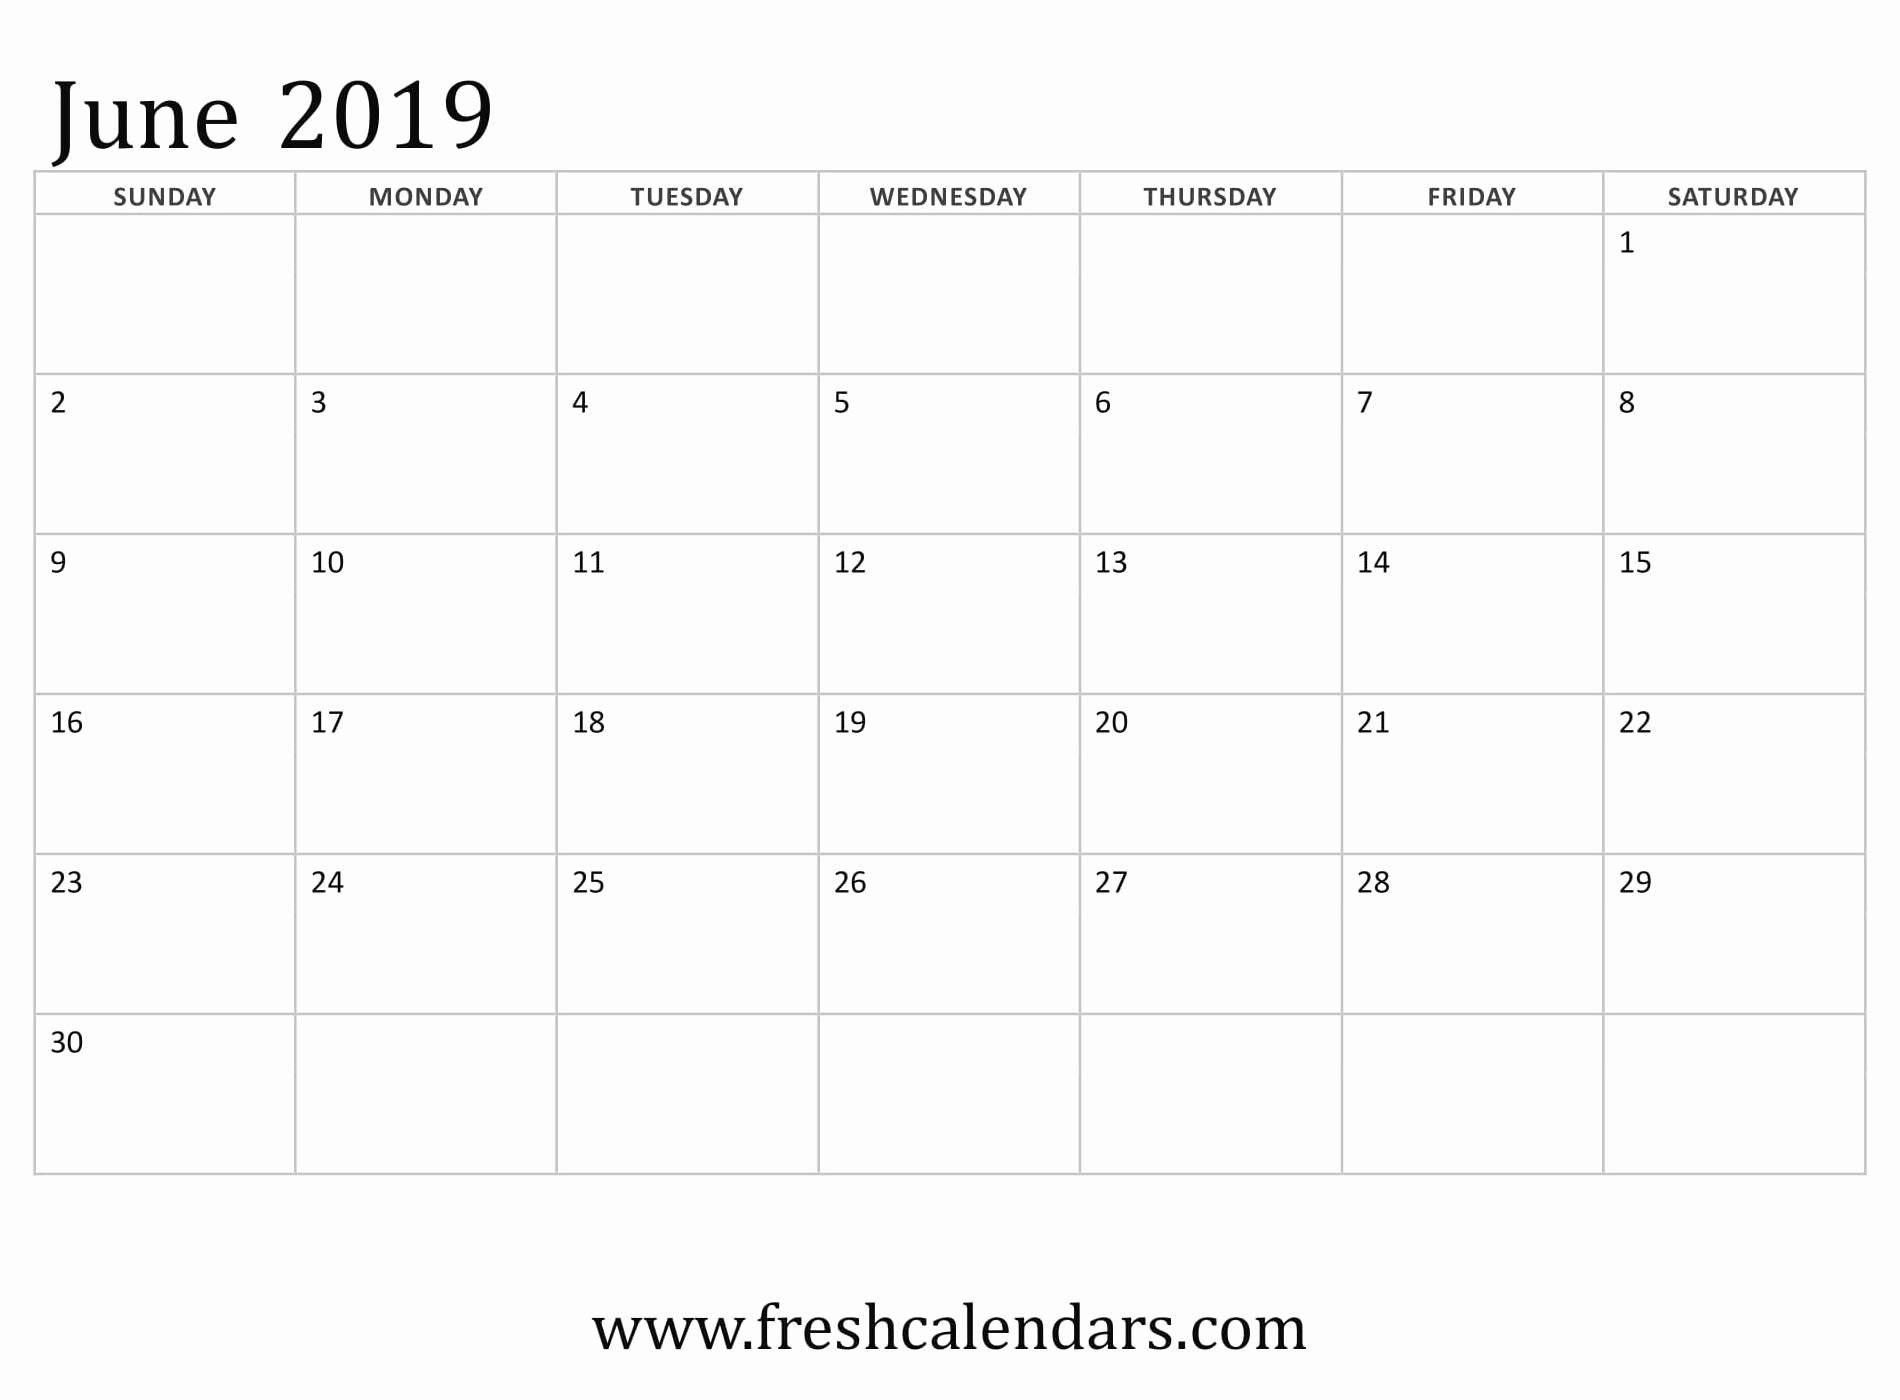 Monthly Calendar Template 2019 Unique June 2019 Calendar Printable Fresh Calendars